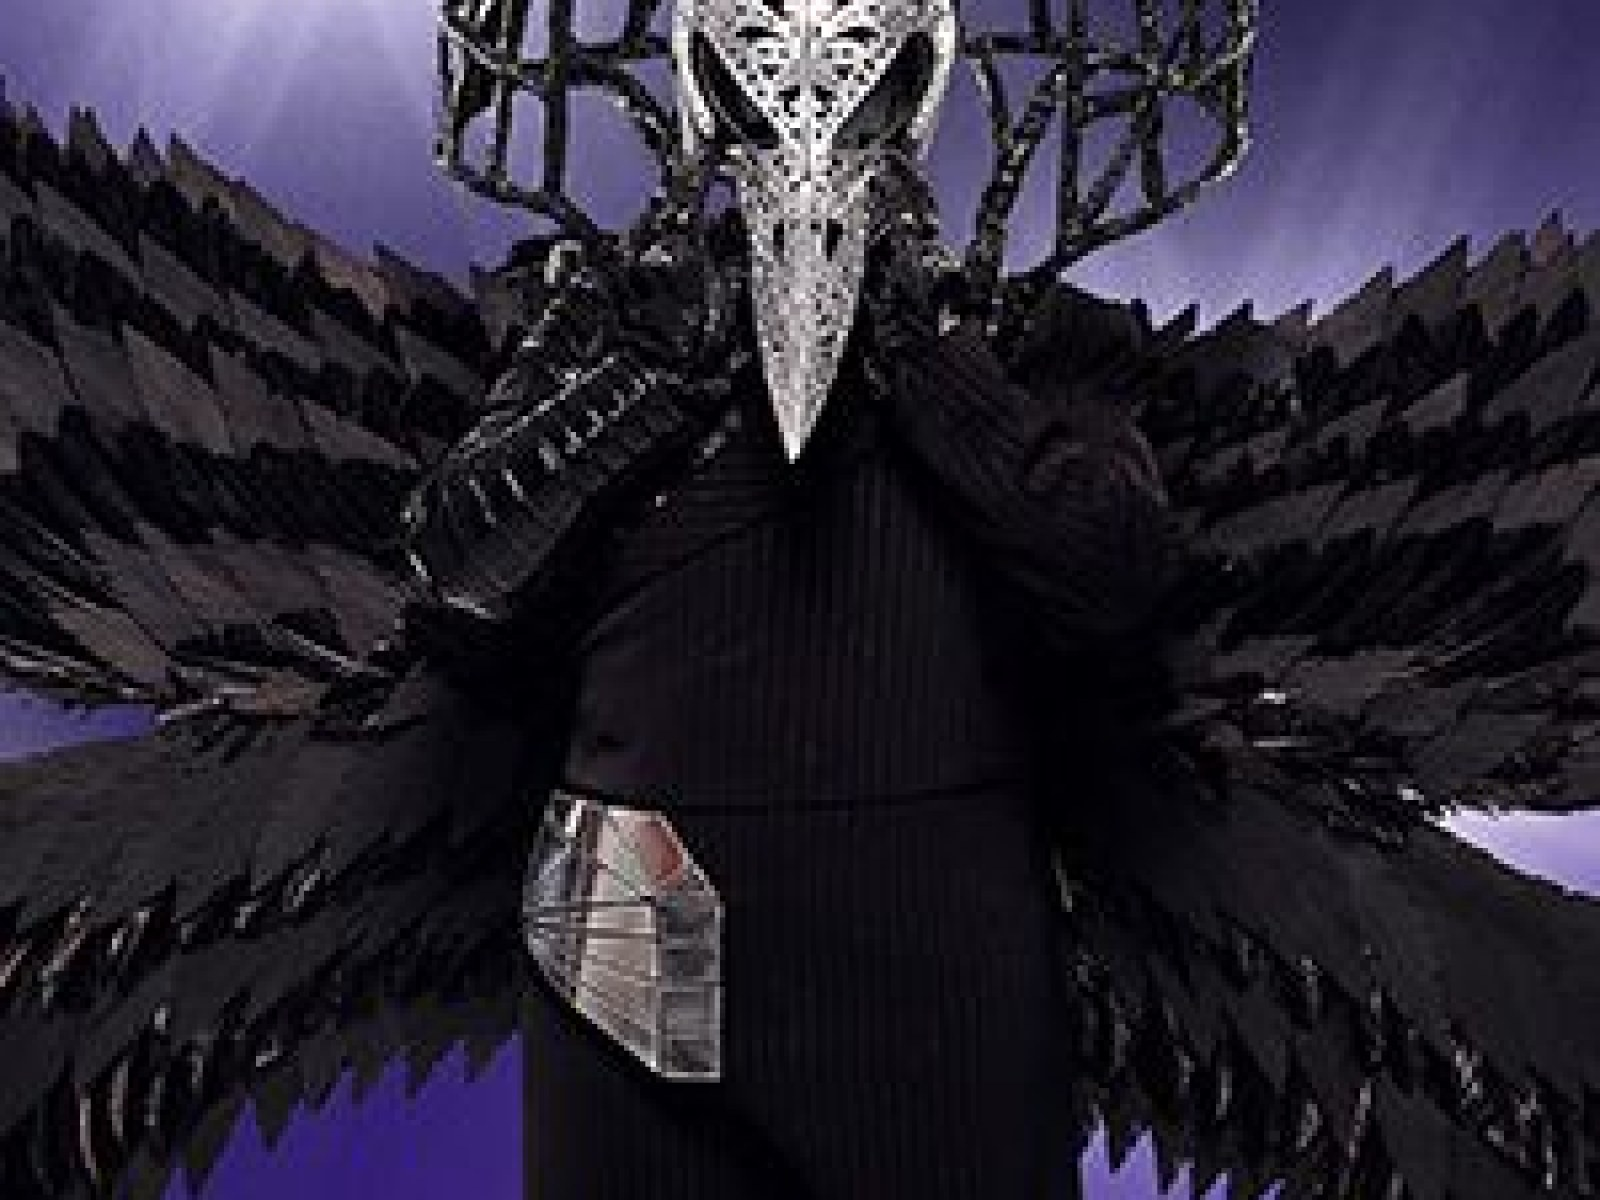 The Masked Singer' Episode 2 Spoilers & Recap: Clues for The Rabbit